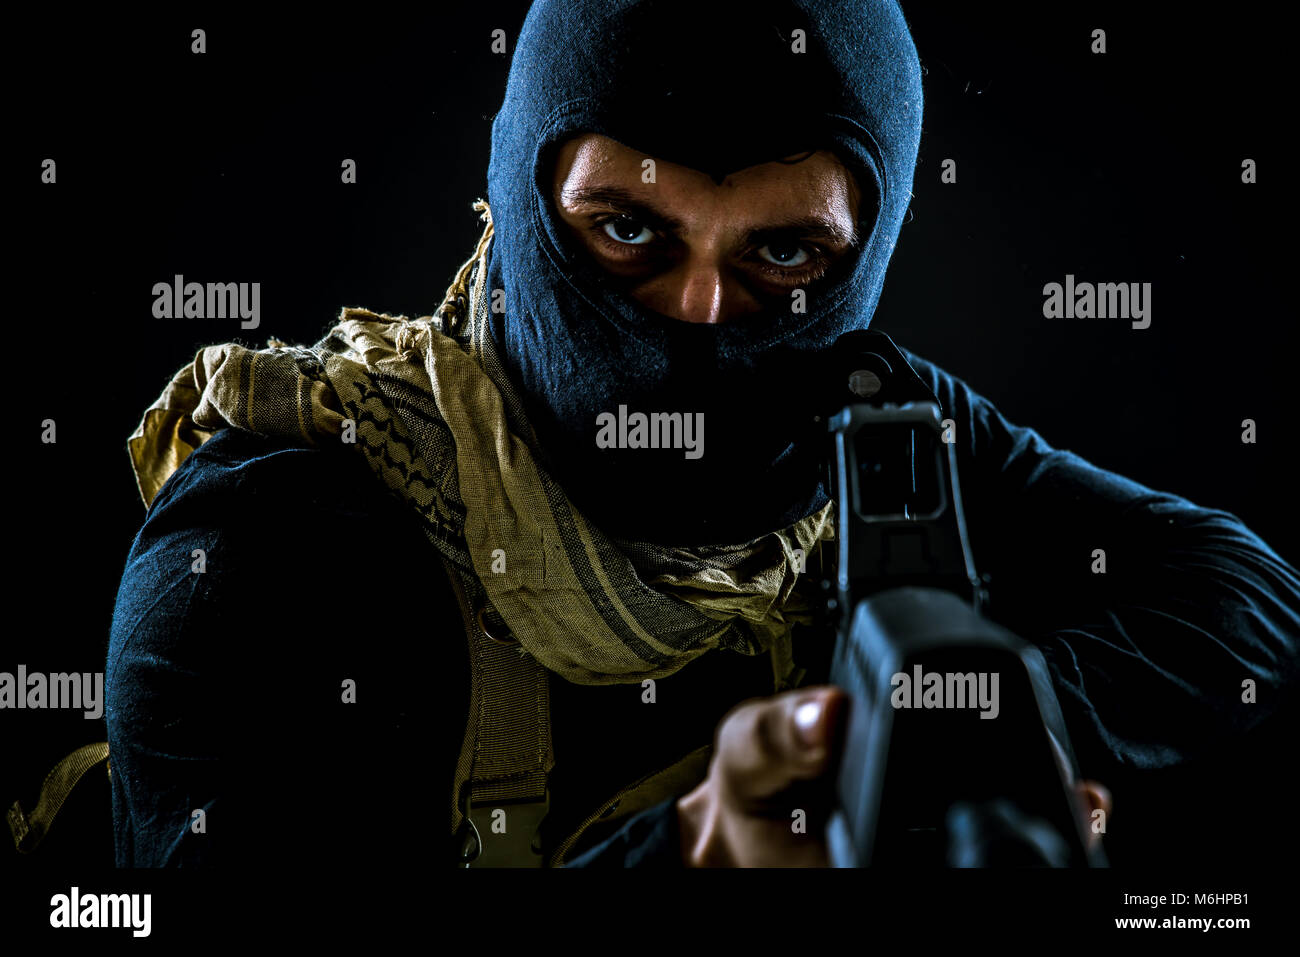 Terrorist criminal portrait Stock Photo